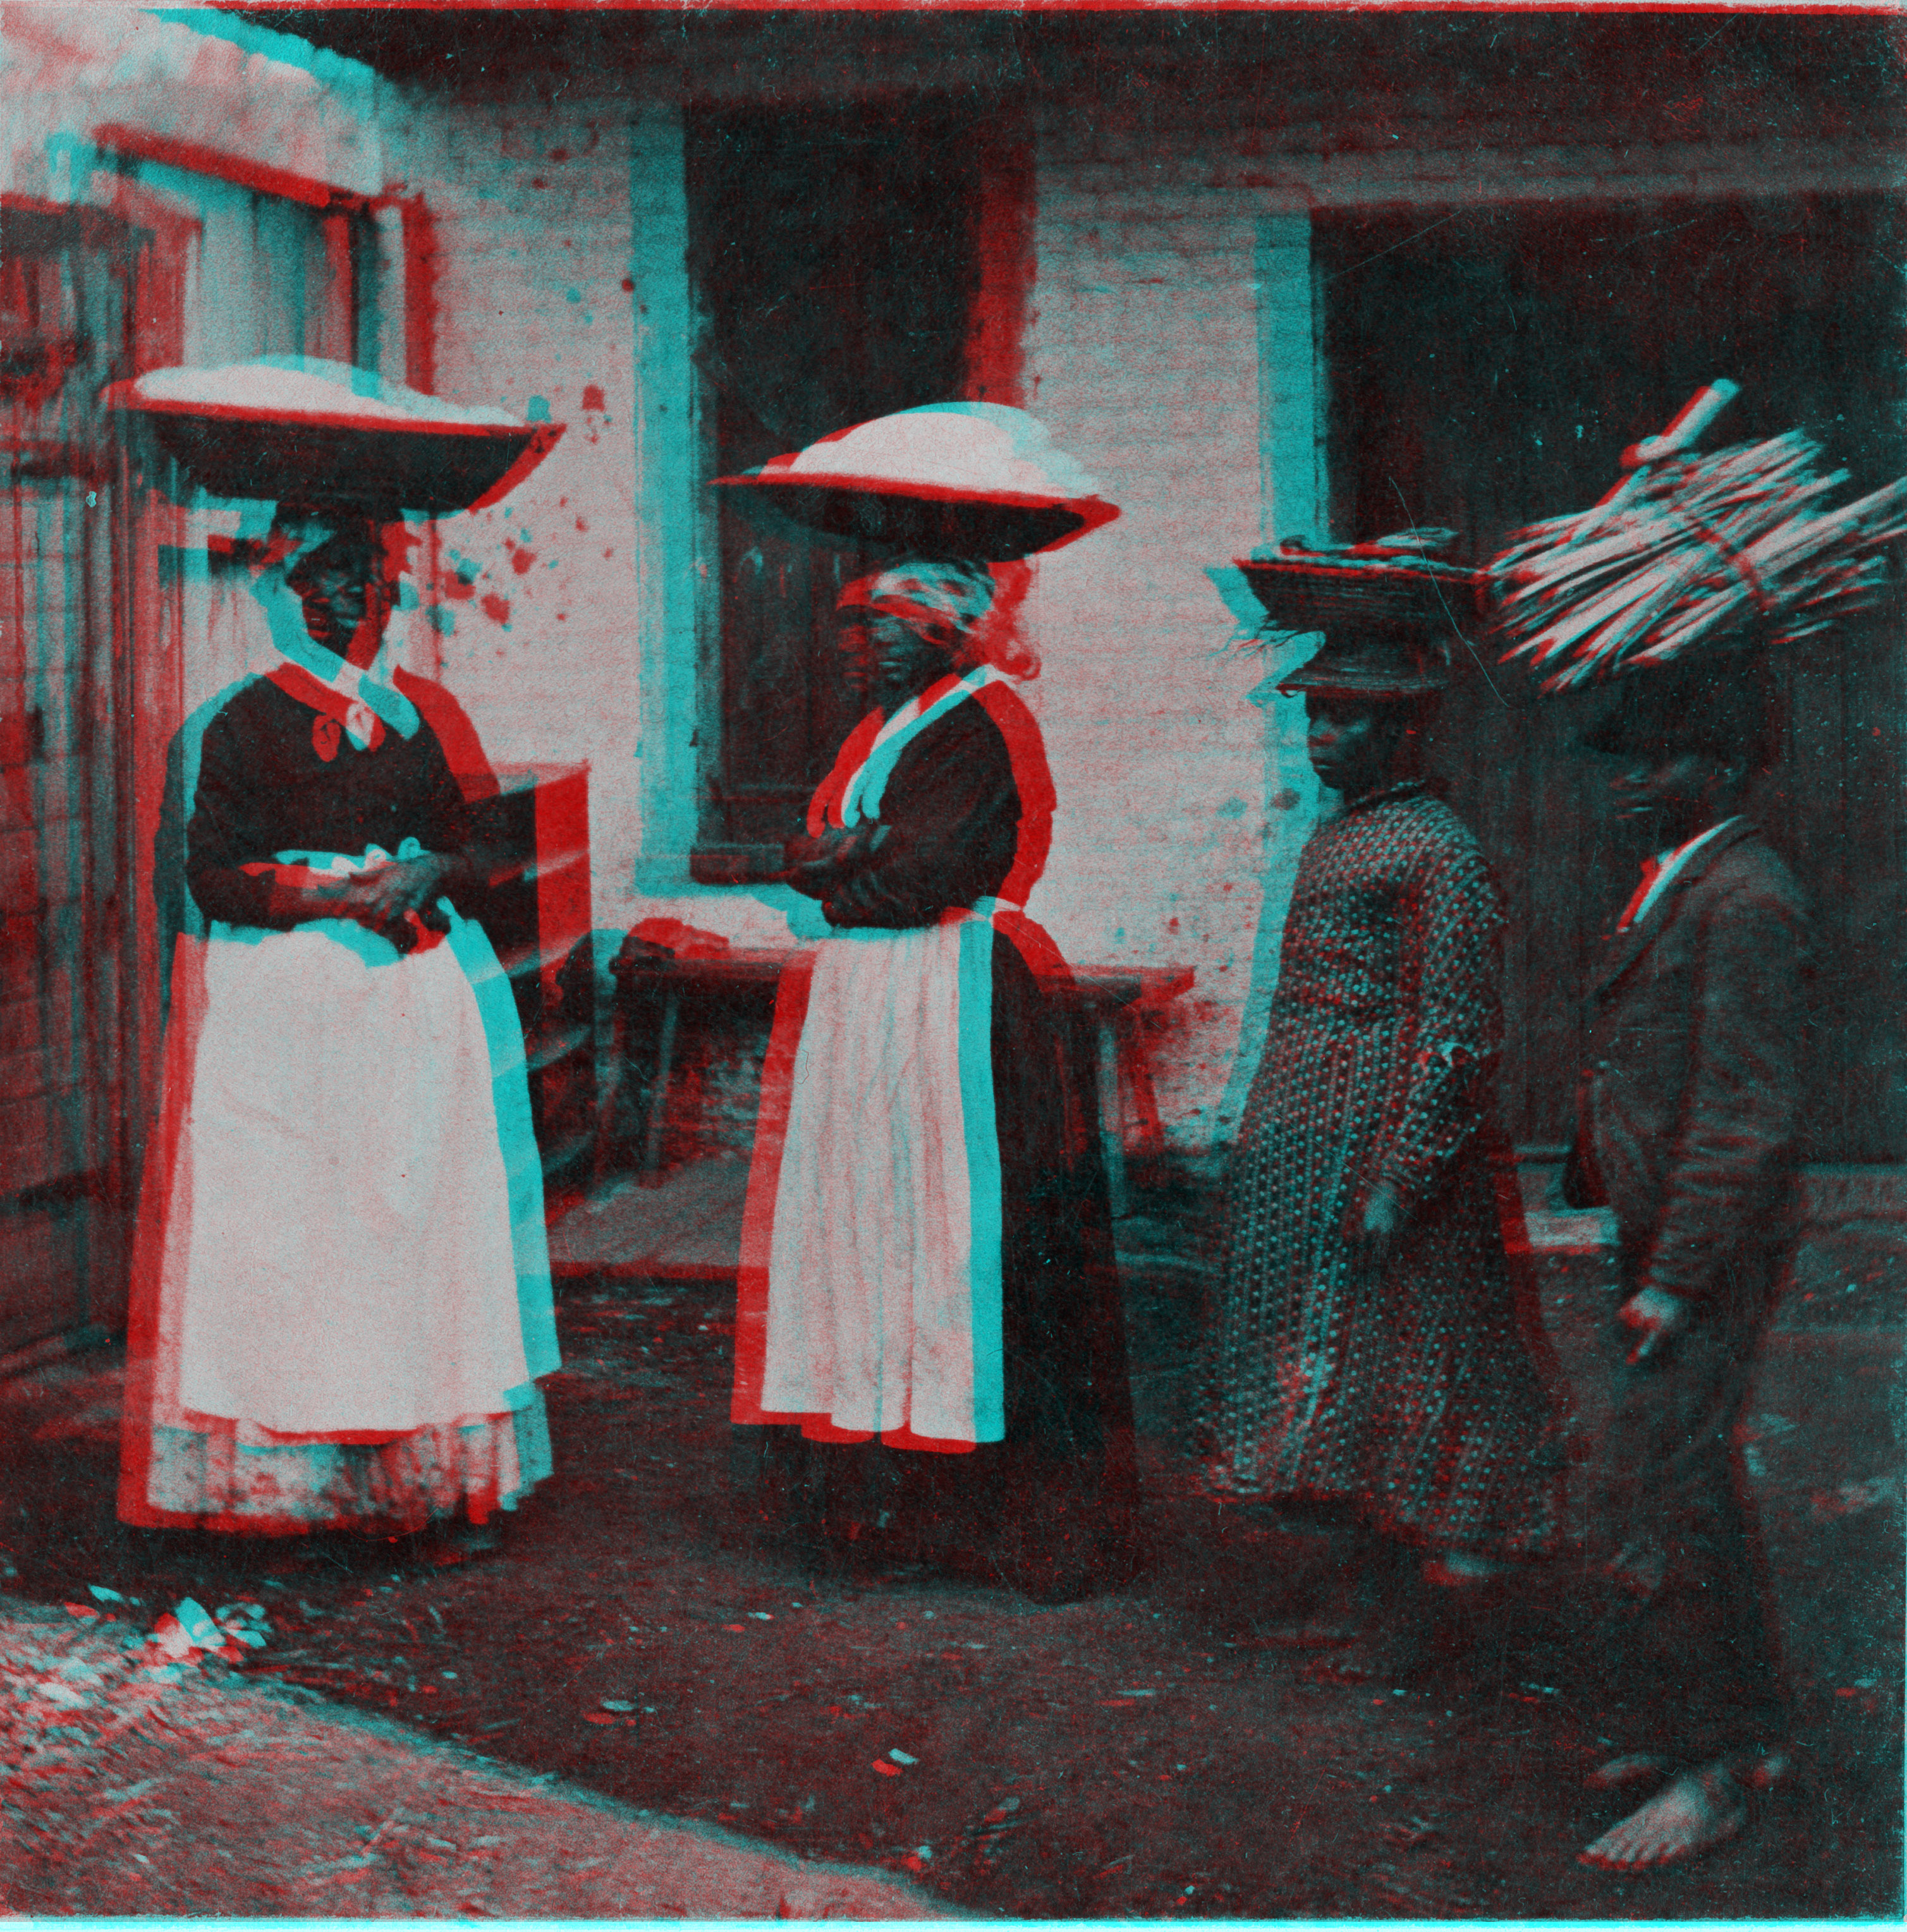 Anaglyph